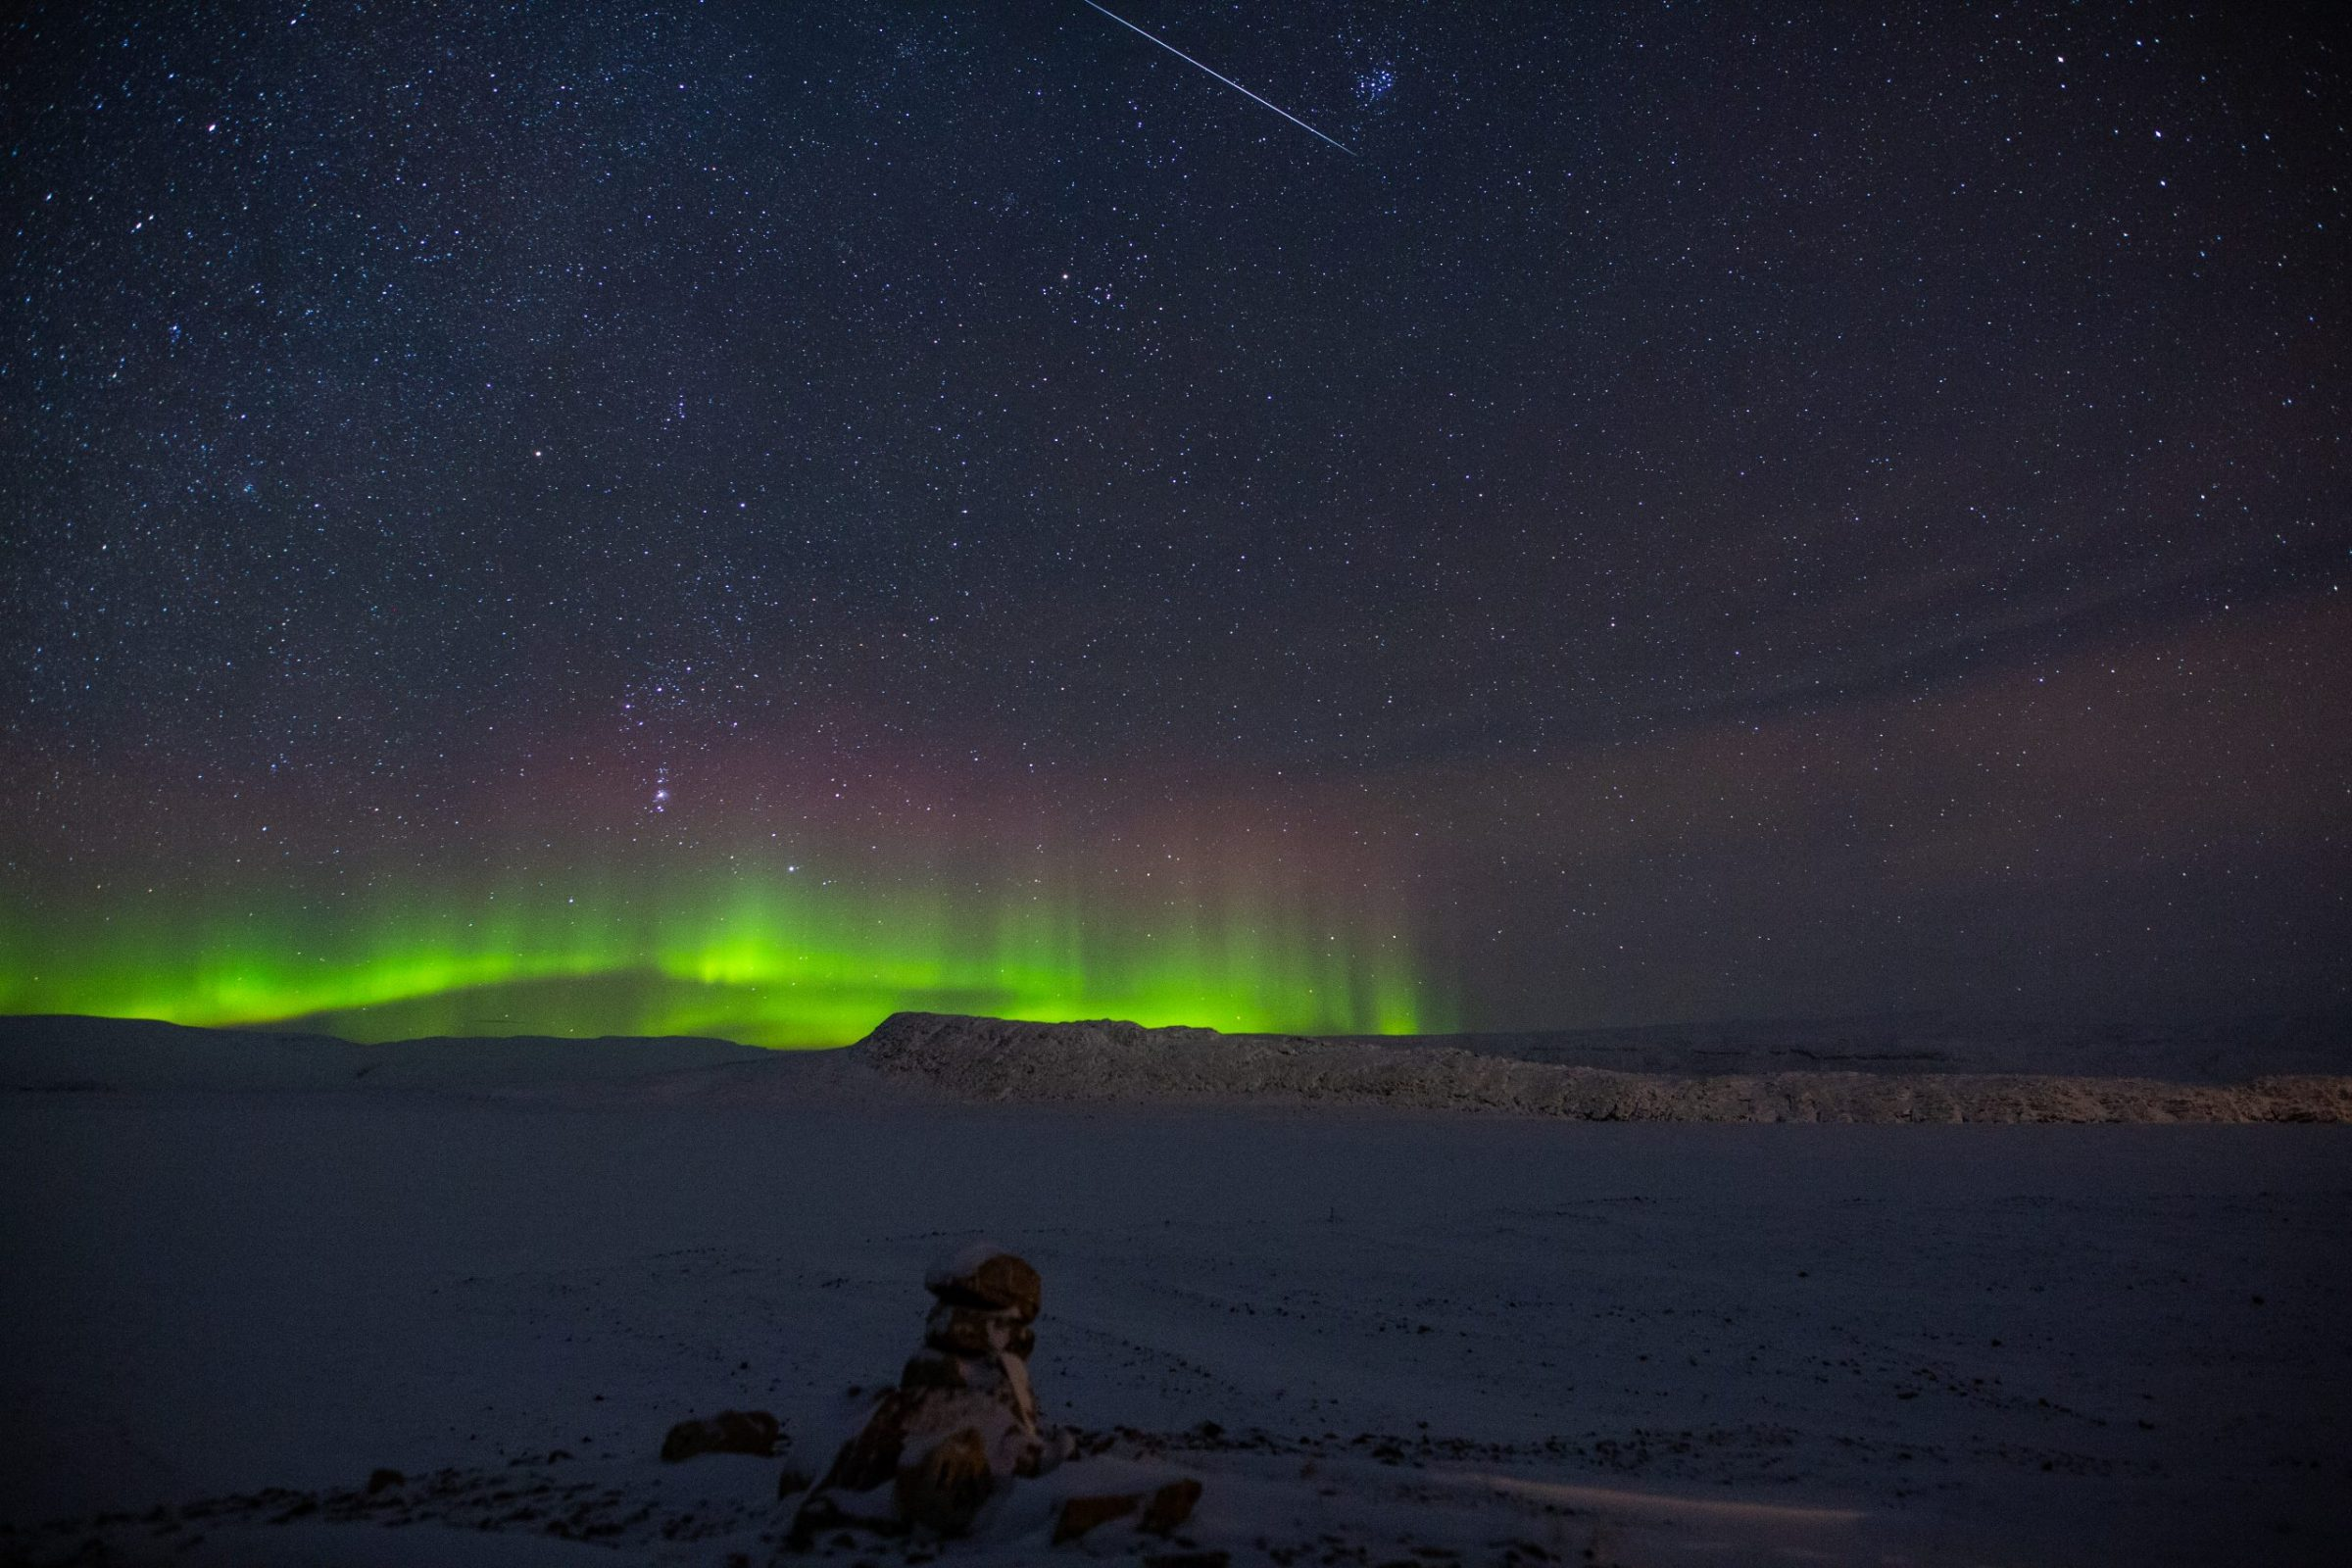 """An Orionid meteor streaks through the night sky above Arctic Bay around 1 a.m. on Dec. 14 in this image taken by Clare Kines. """"It's taken overlooking Marcil Lake and shows an Orionid meteor near the constellation Pleiades,"""" he writes. """"Orion is visible in the photo as well as some aurora to the south of us."""" (Photo by Clare Kines)"""